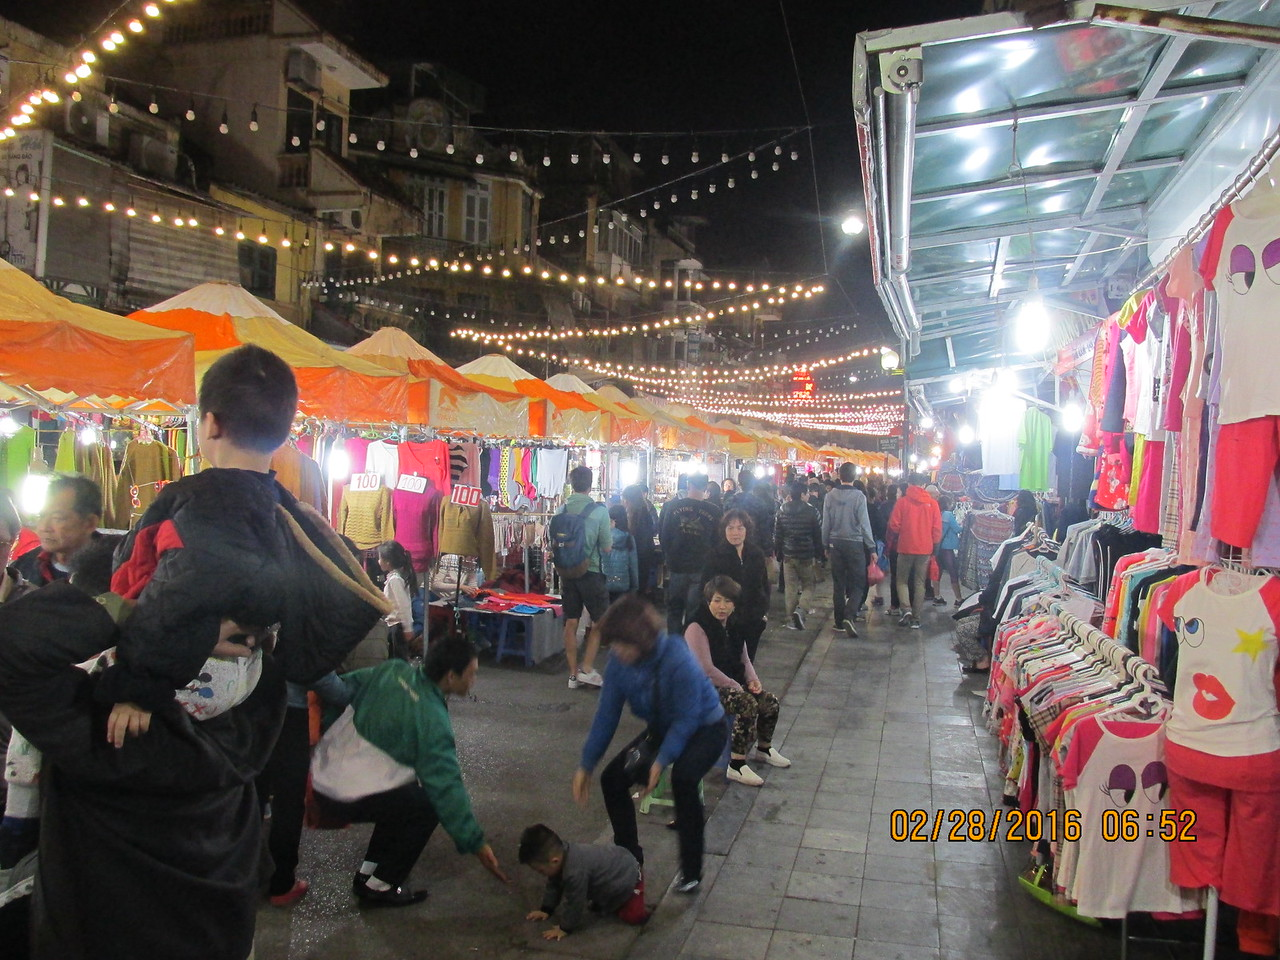 0076 - Night Market on Streets of the Old Quarter - Hanoi Vietnam - Date Correct but Time on Pic is Wrong